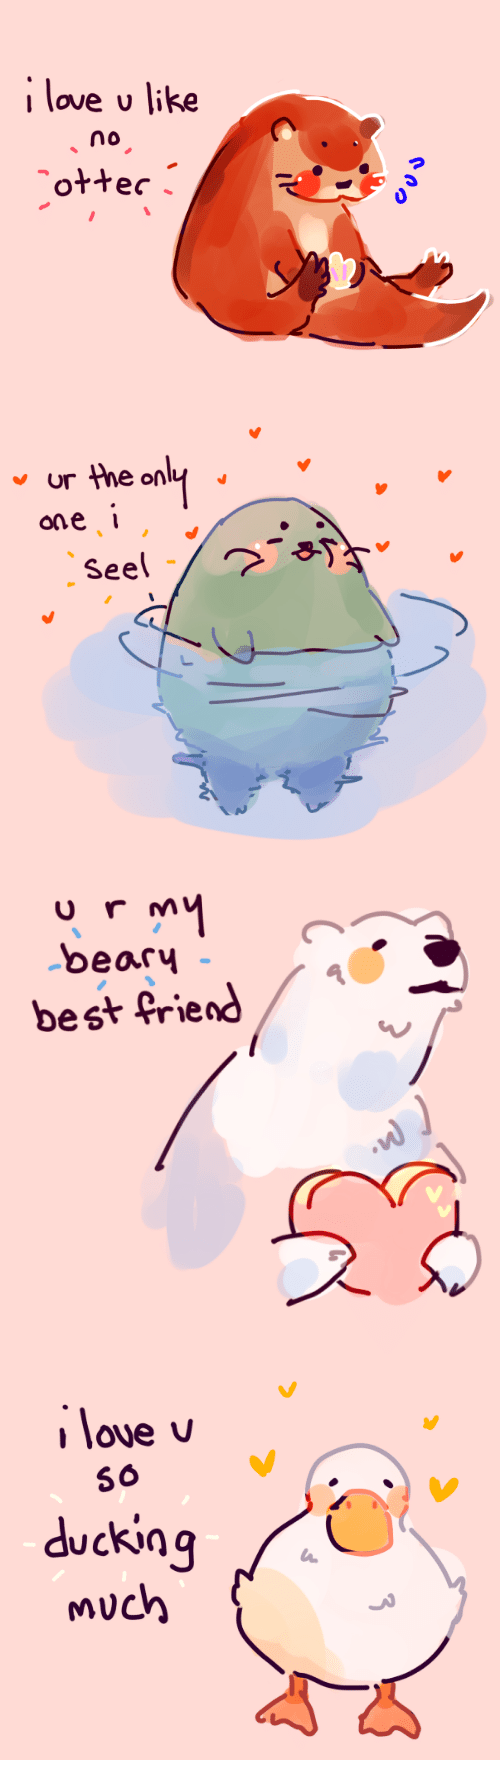 Best Friend, Love, and Best: I love u like  no   ur the only  ane   beary  best friend   56  ducking  much